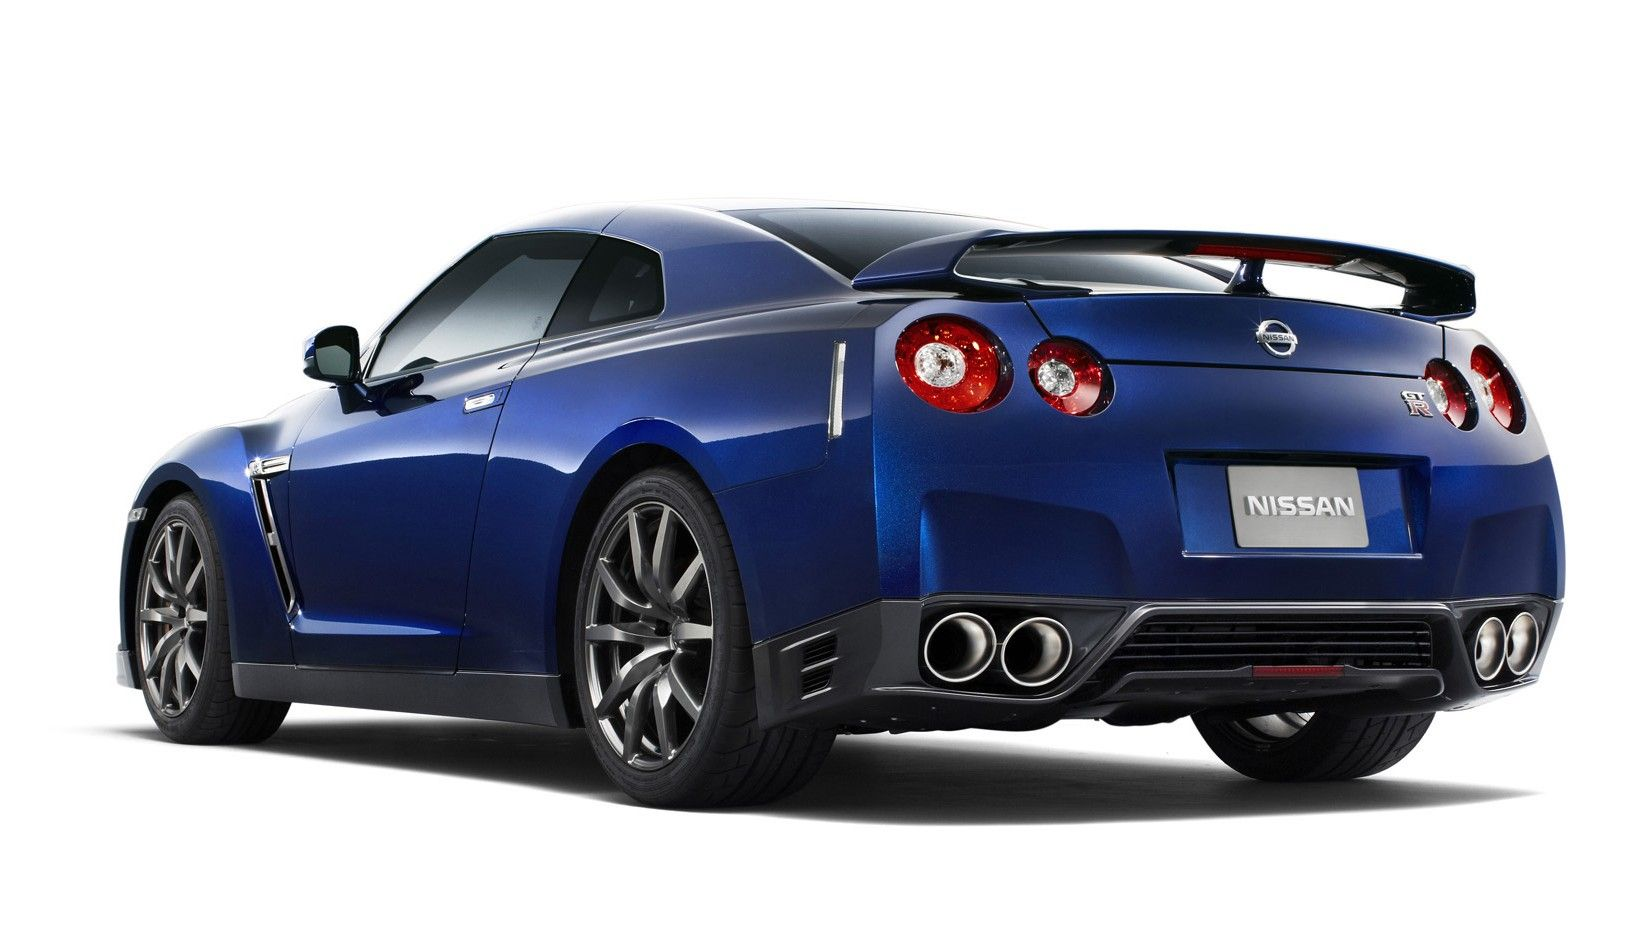 Pictures of nissan skyline gtr full cars hd full cars hd pictures of nissan skyline gtr full cars hd full cars hd vanachro Image collections